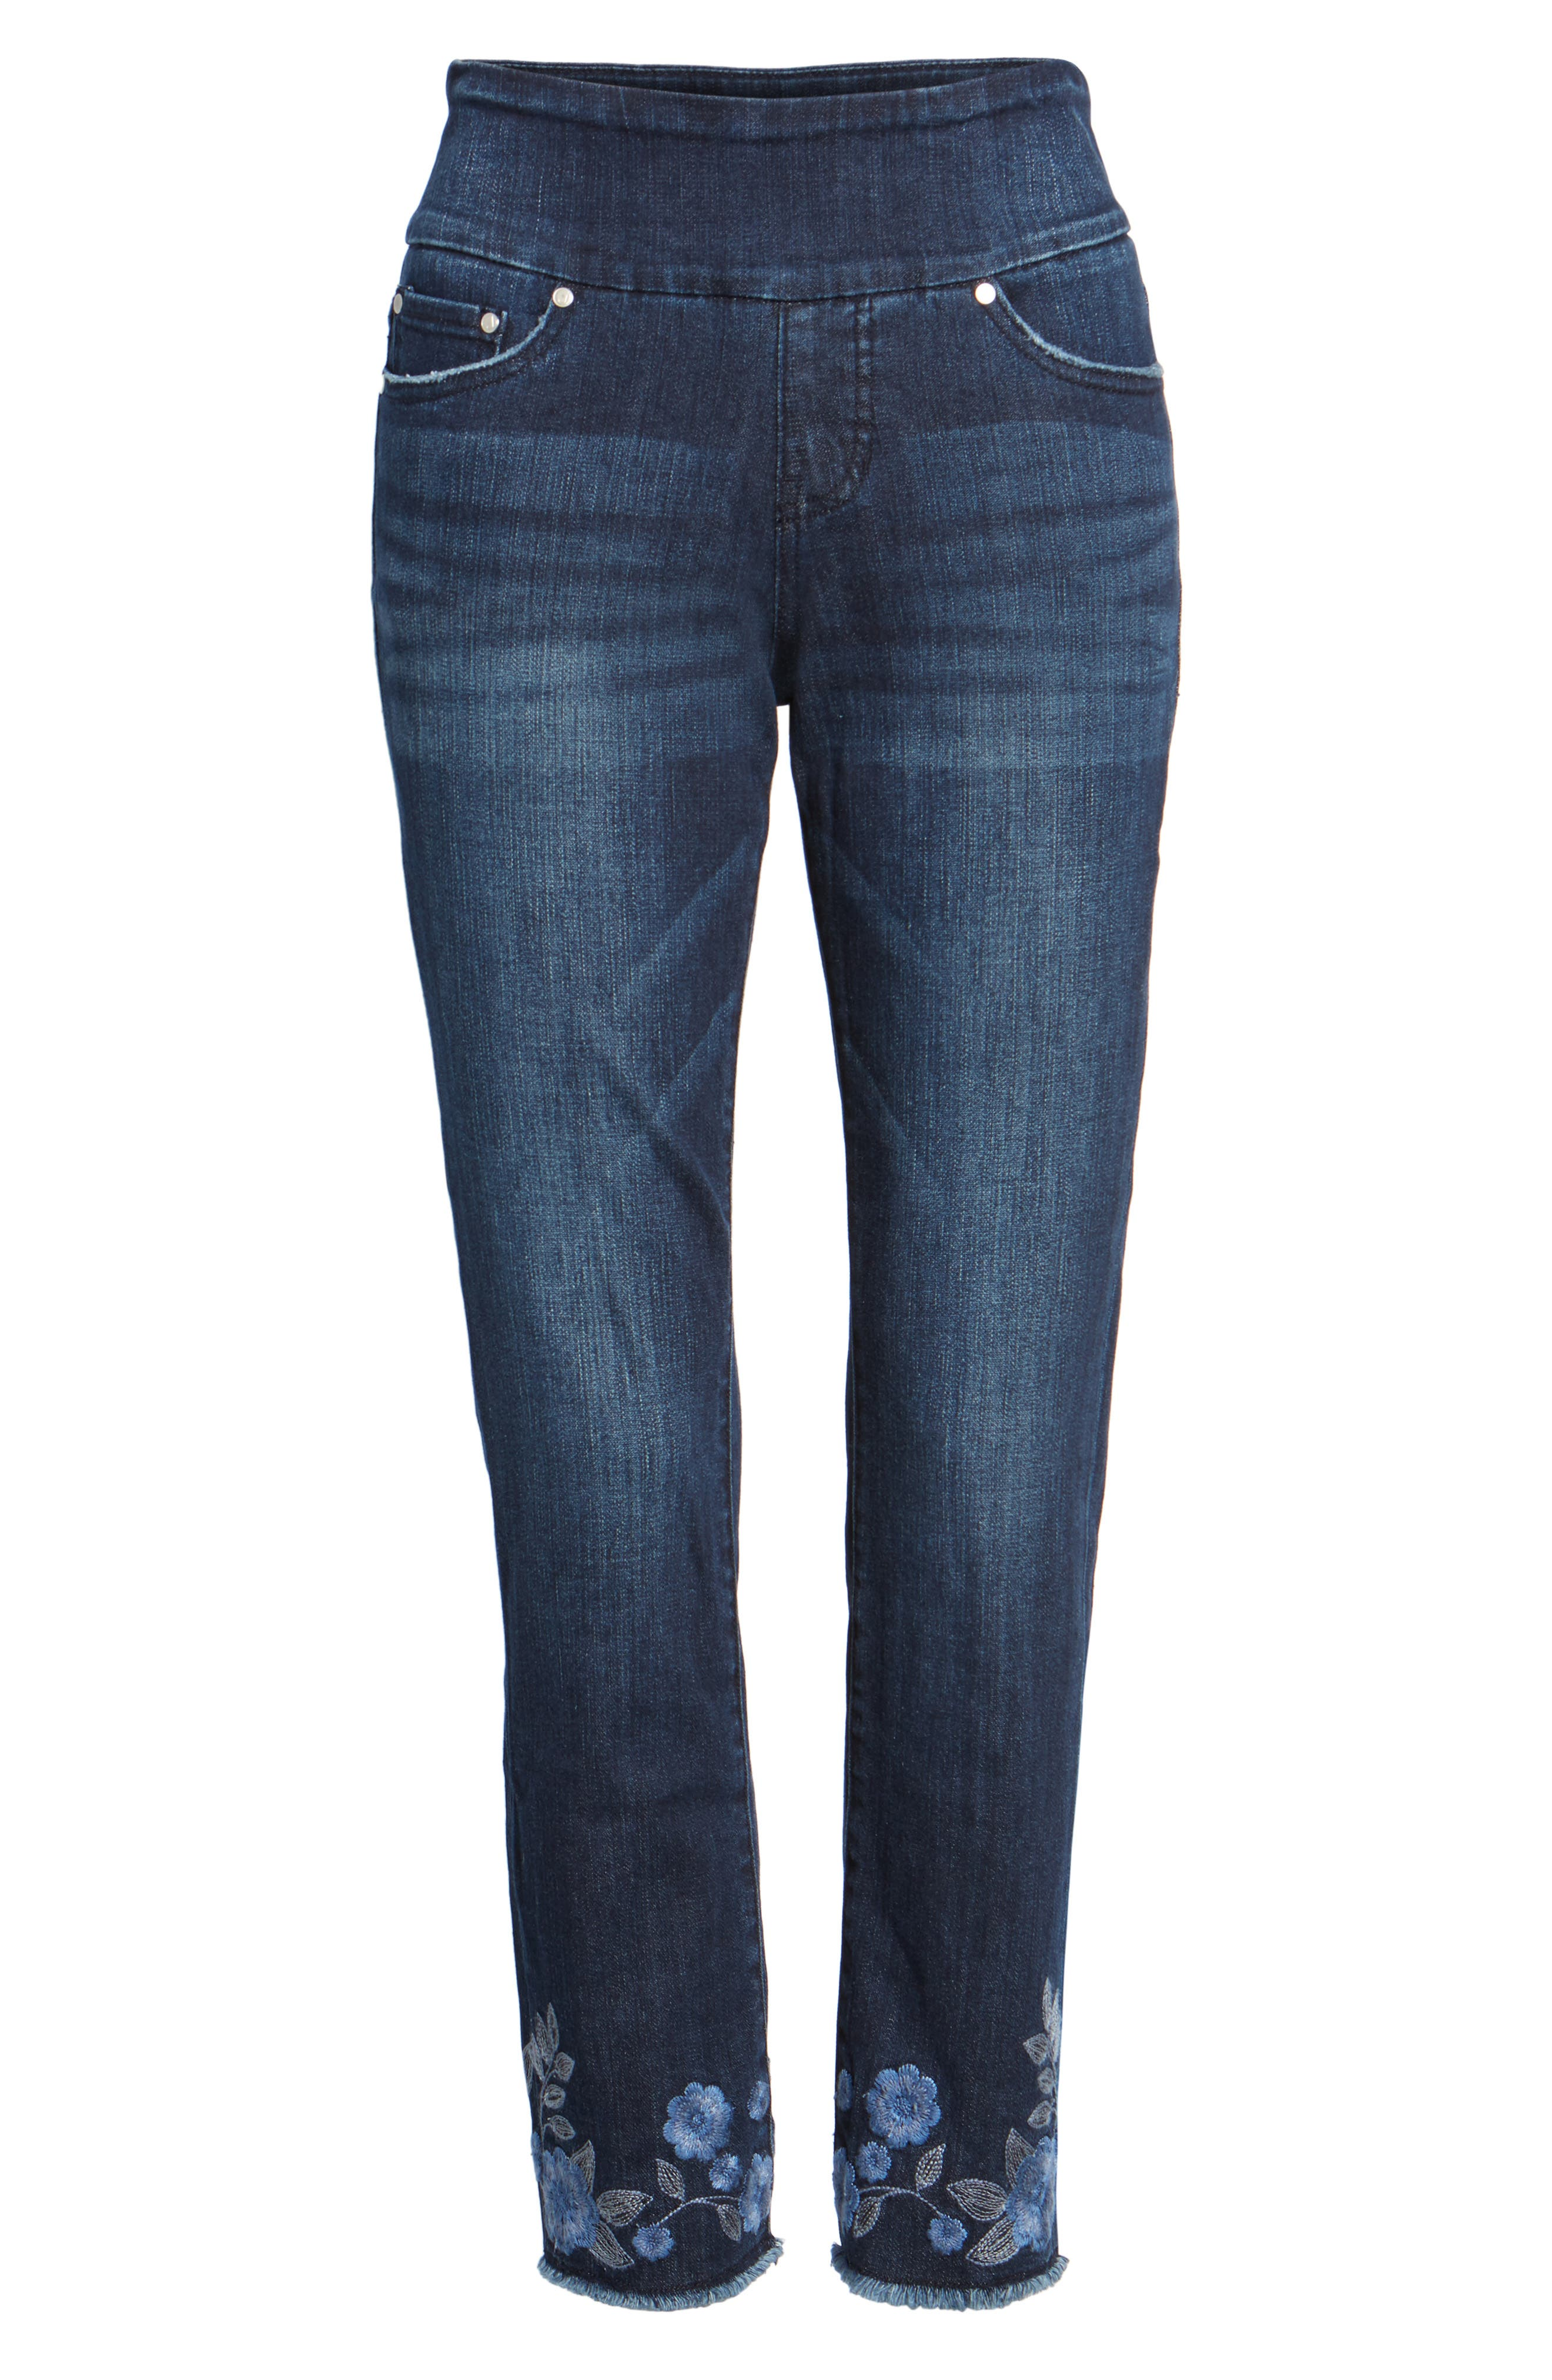 Amelia Embroidered Slim Ankle Jeans,                             Alternate thumbnail 6, color,                             Meteor Wash